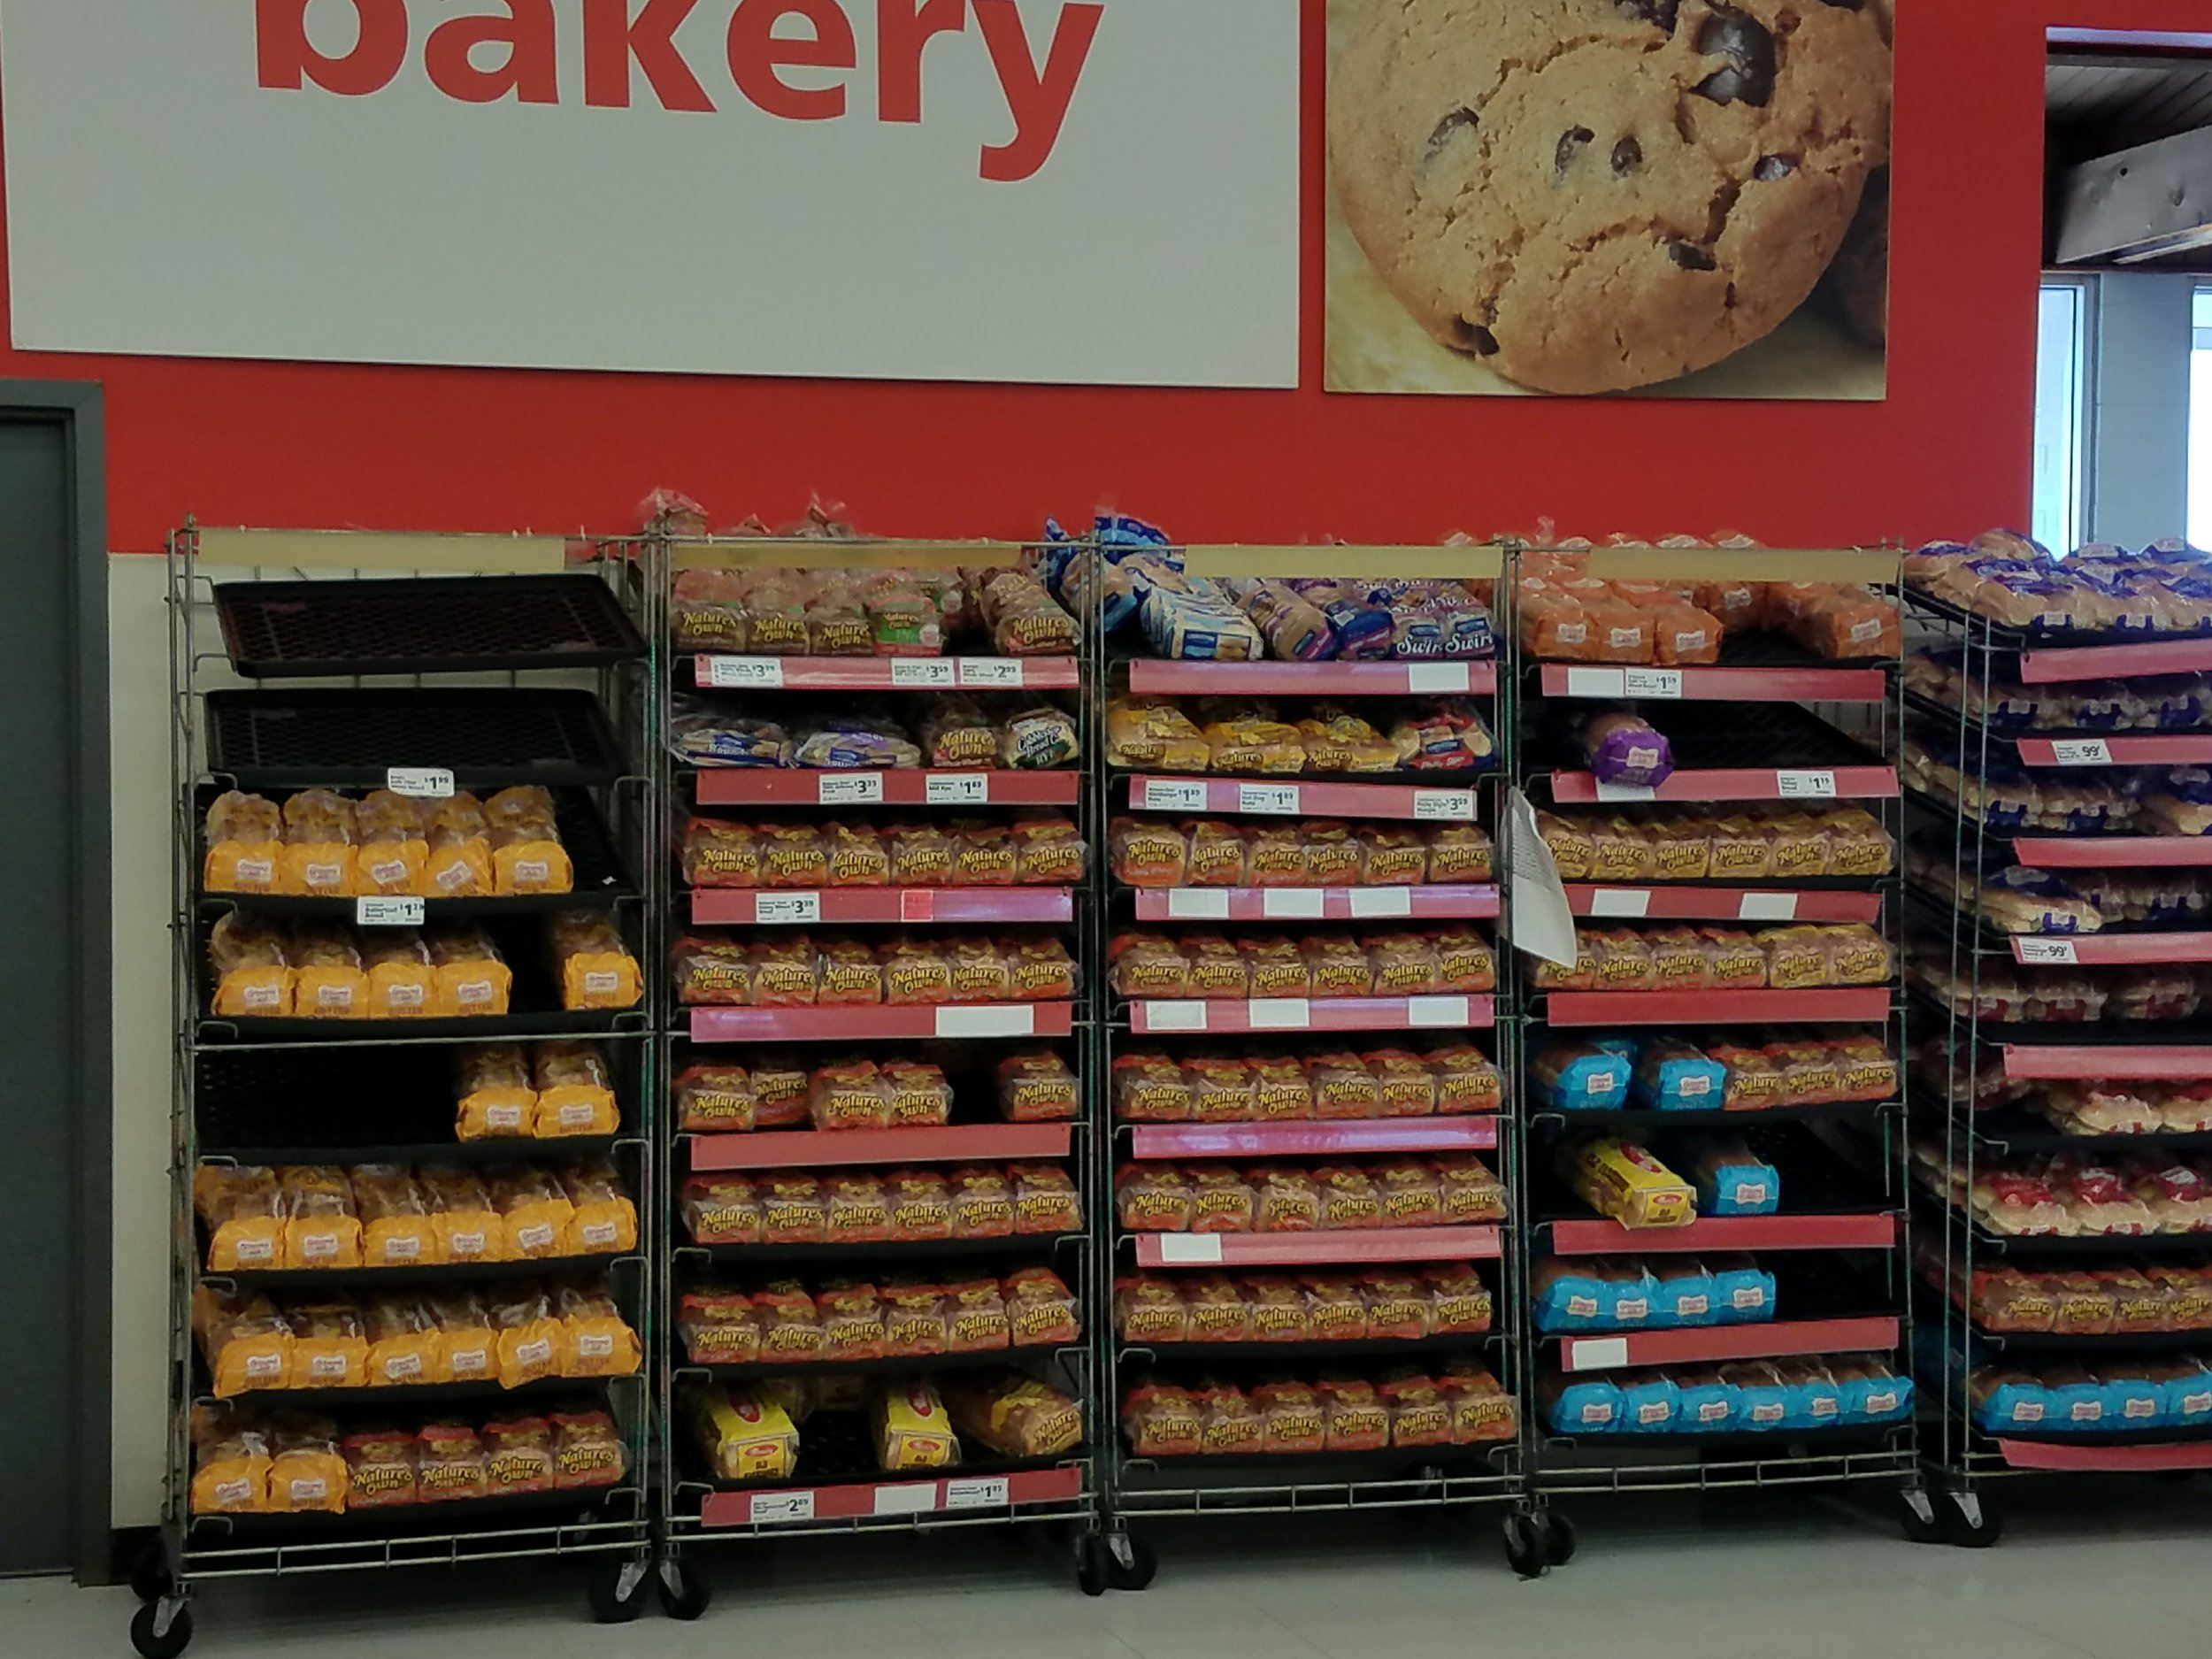 save-o-lot store's stock of bread (currently refilled) after irma